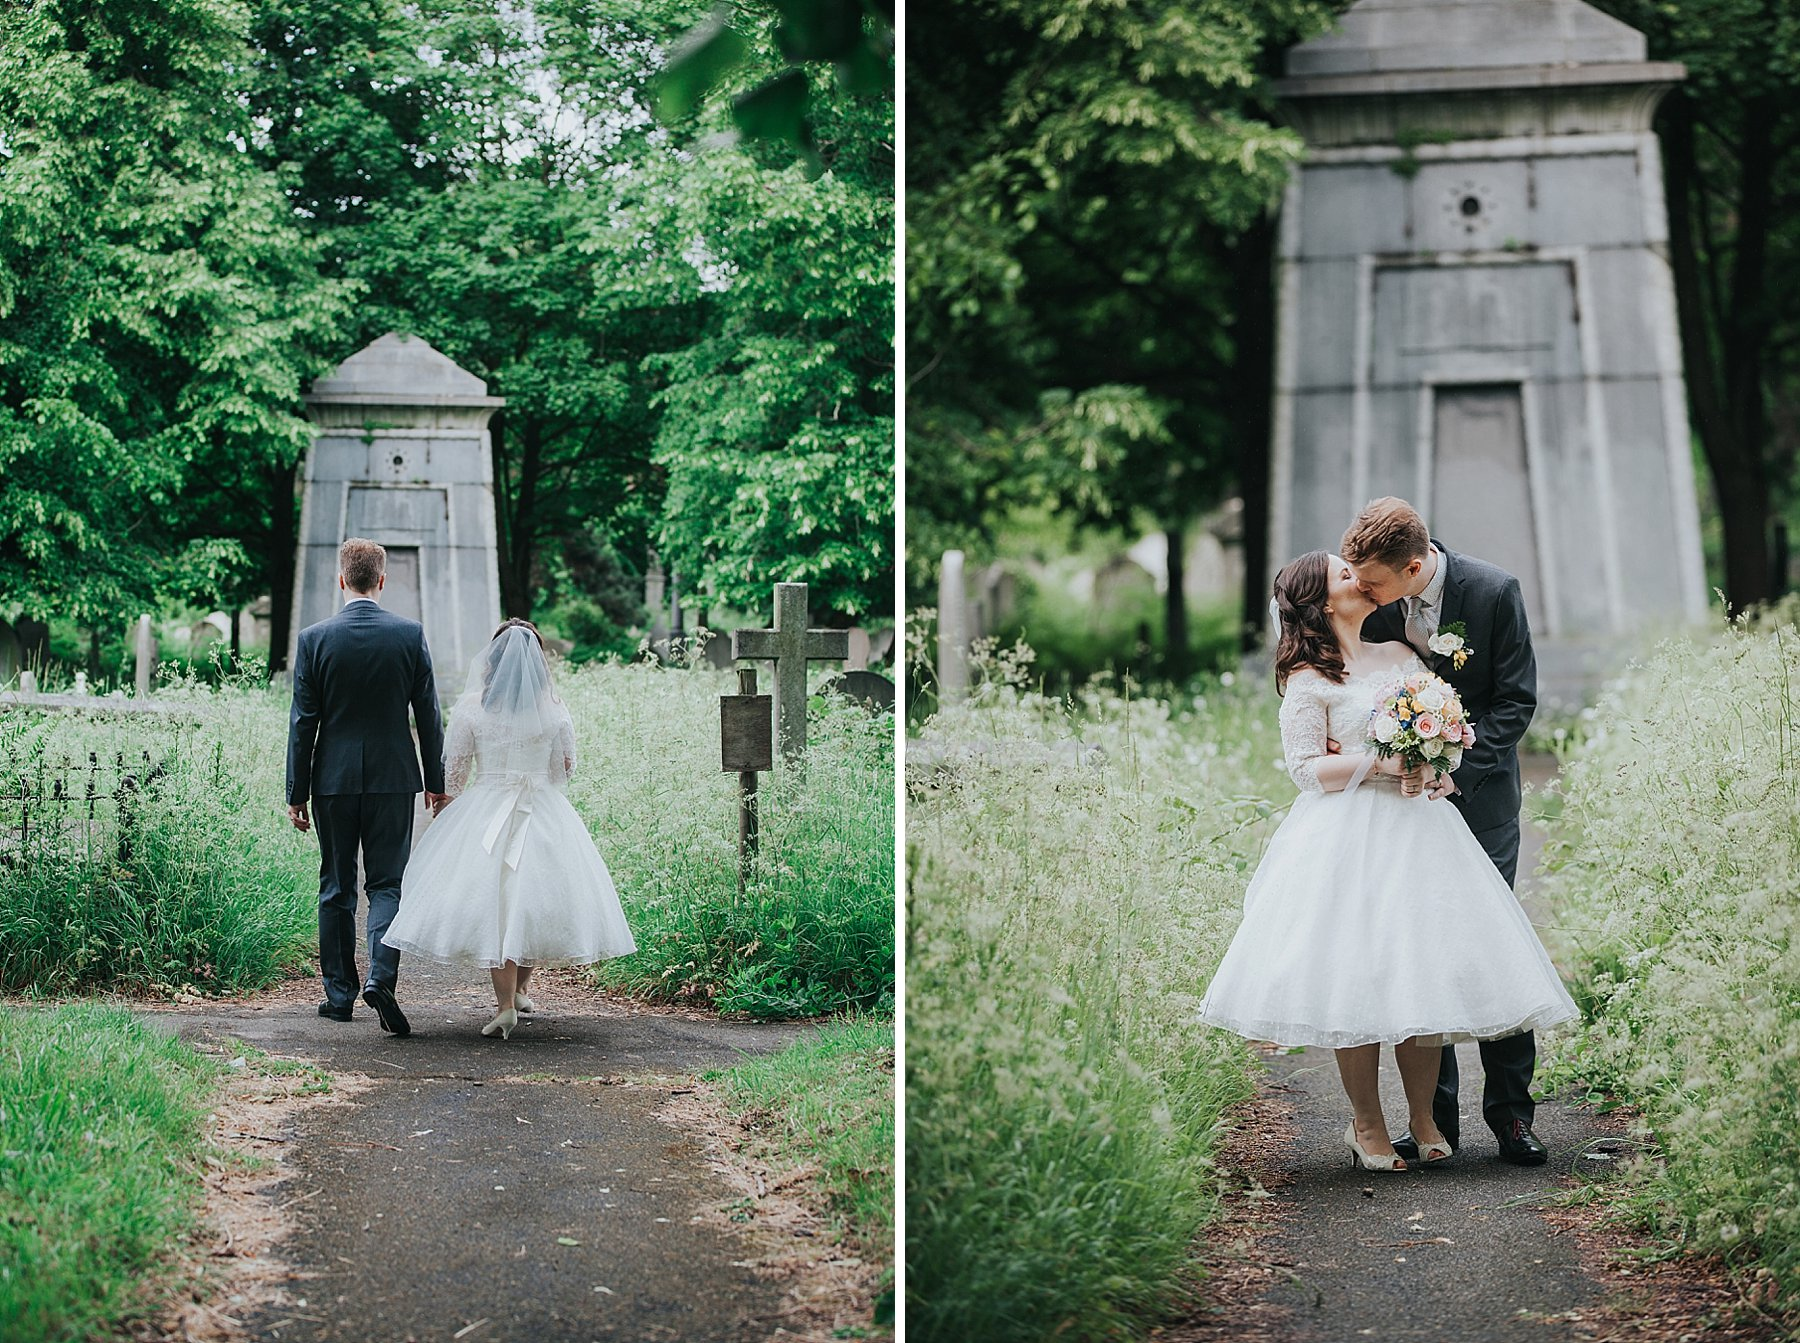 174 groom bride wedding portraits Brompton Cemetery.jpg